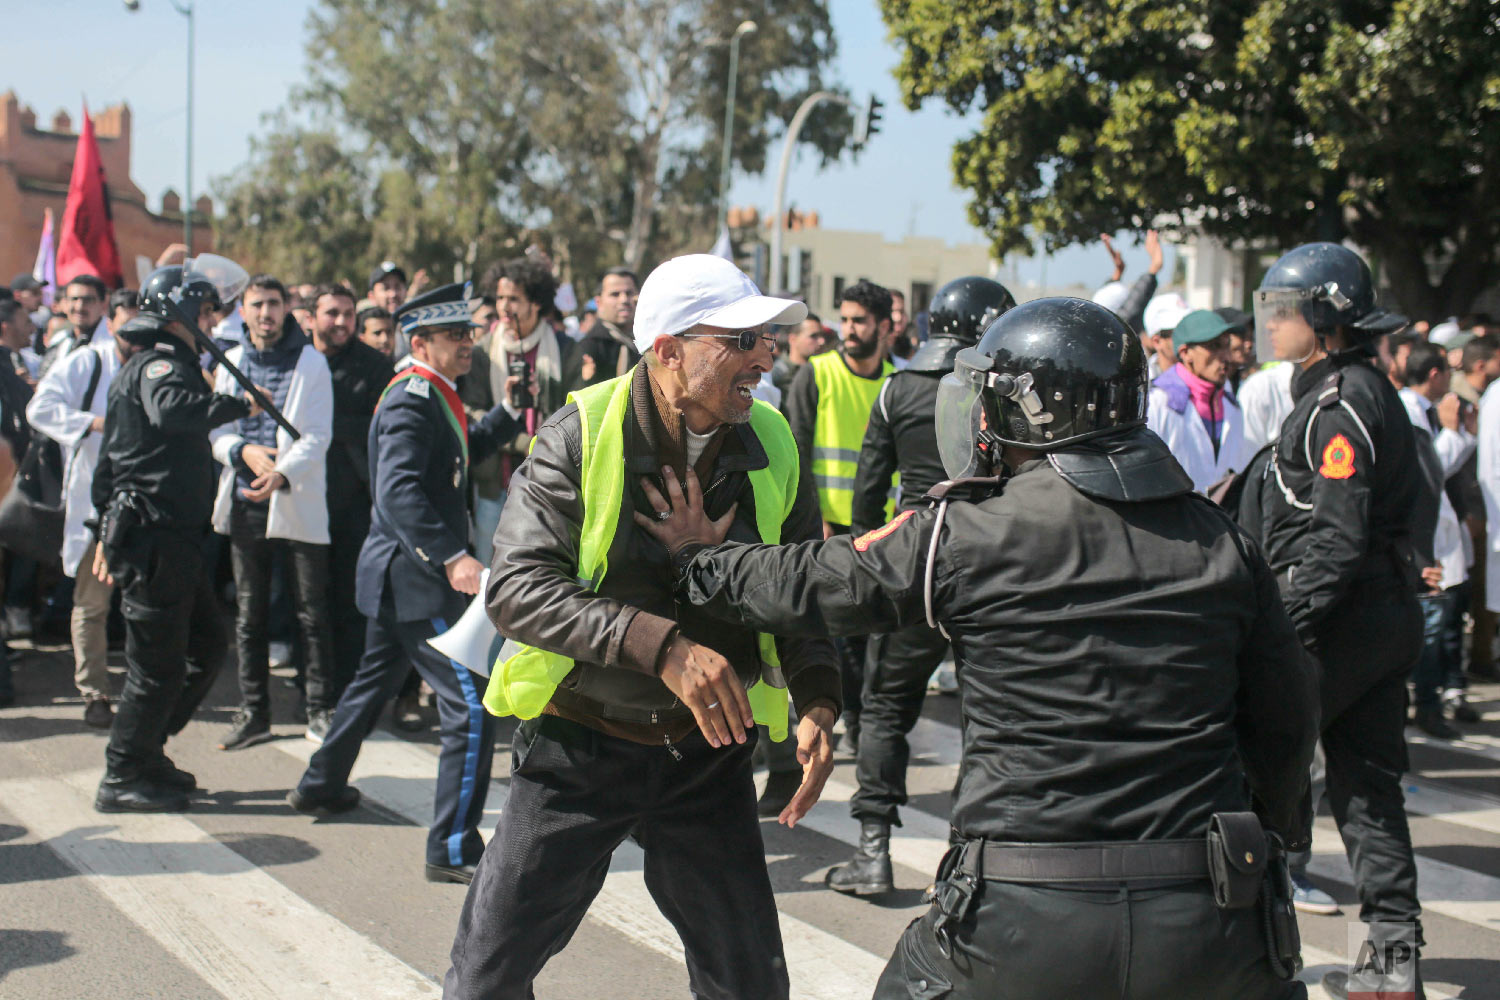 A teacher wearing a yellow vest is confronted by security forces during a demonstration in Rabat, Morocco, Feb. 20, 2019. (AP Photo/Mosa'ab Elshamy)